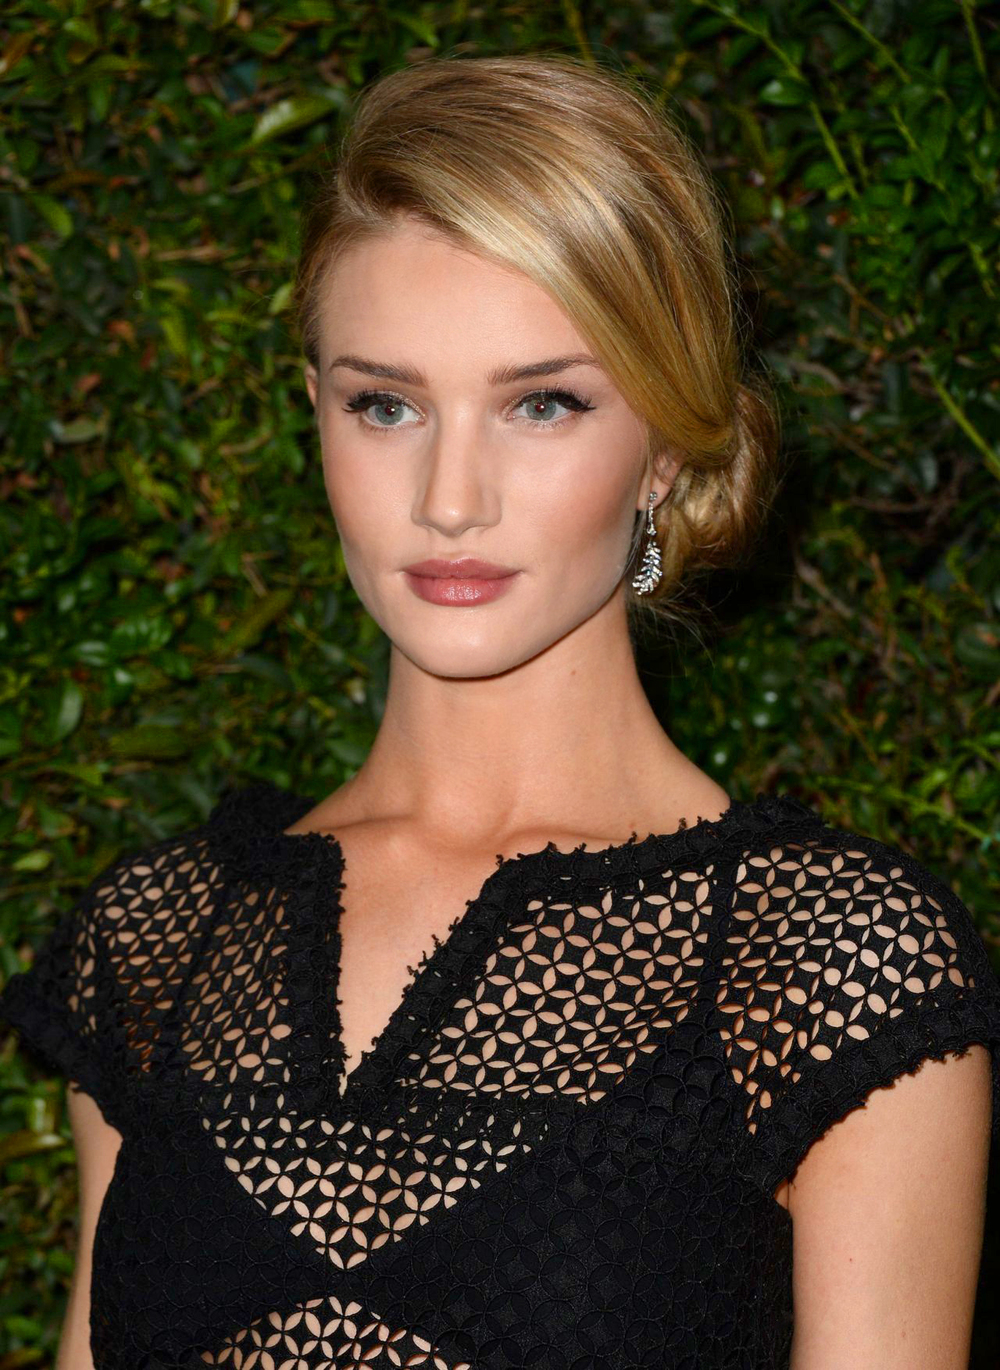 201403_RHUNTINGTONWHITELEY_CHANELPREOSCARDINNER_CER_MB_01.jpg